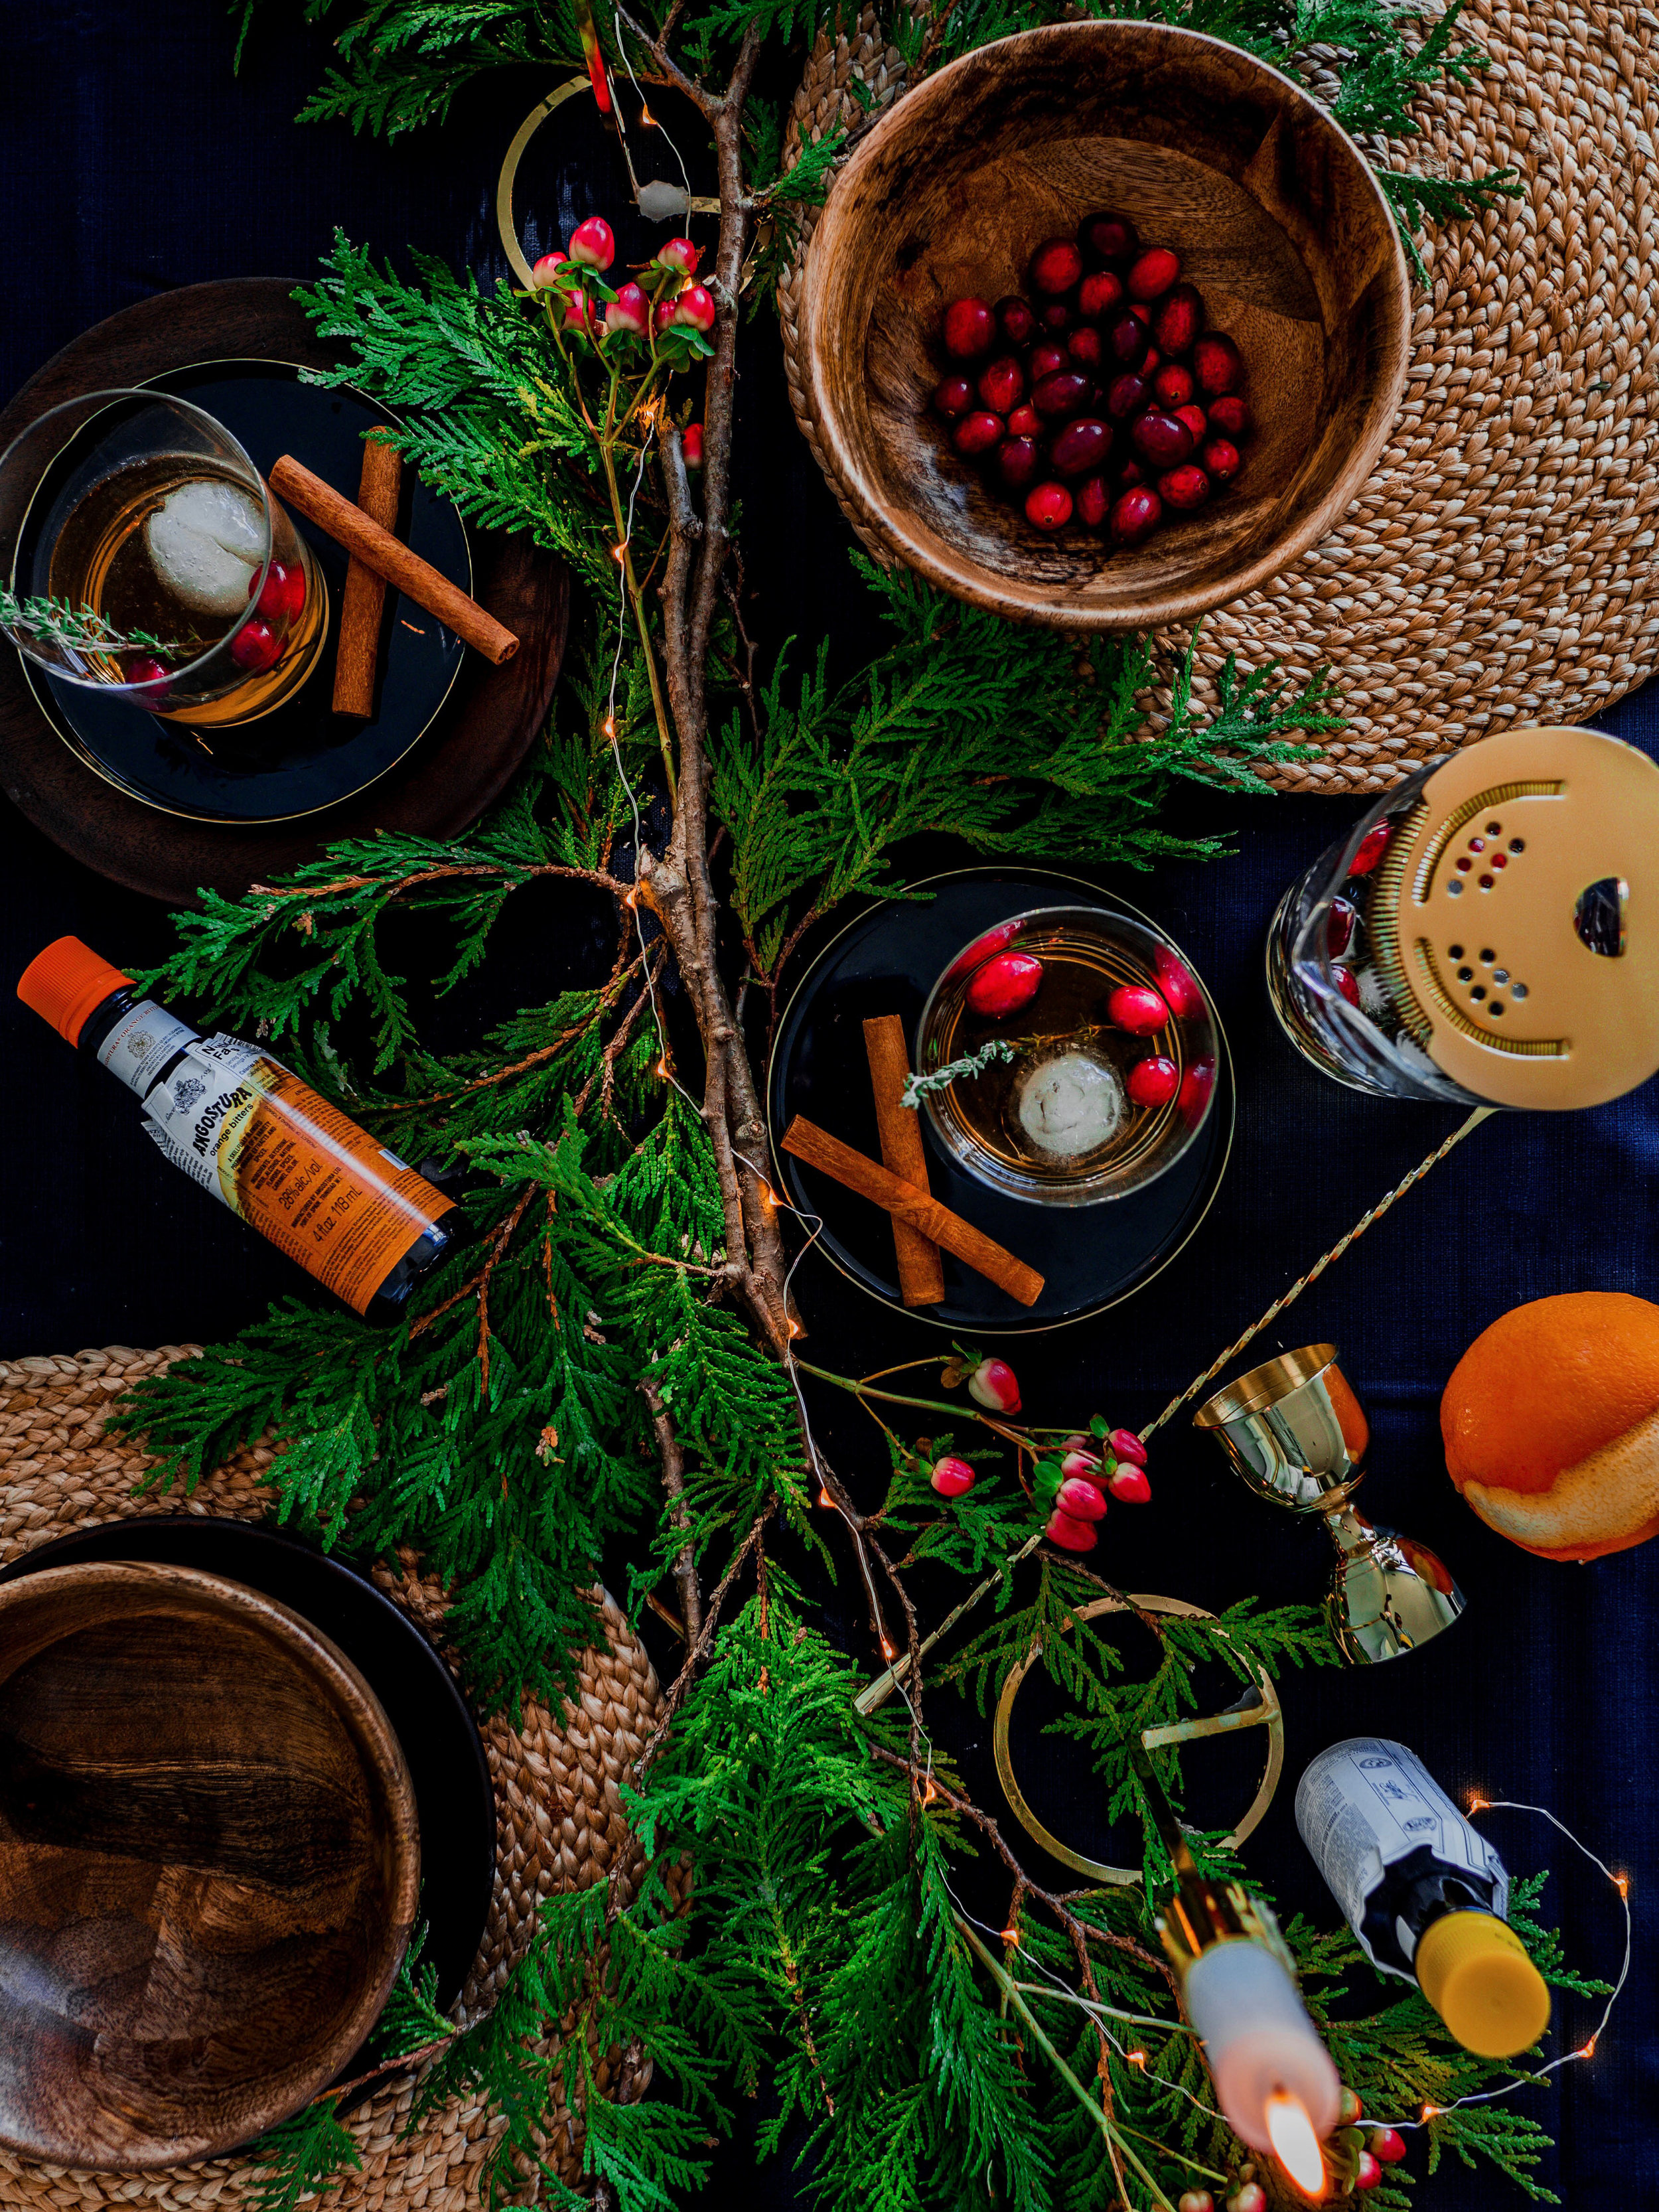 the ingredients. - • 3 oz. your favourite Bourbon or Rye Whiskey• 1 oz. Cranberry Simple Syrup (1 part sugar – I enjoy Demerara or Turbinado, 1 part water and a handful of cranberries. Boil in a saucepan and stir to dissolve)• 3-4 dashes ANGOSTURA orange bitters• Garnishes: Fresh Cranberries, Rosemary or Thyme• Ice